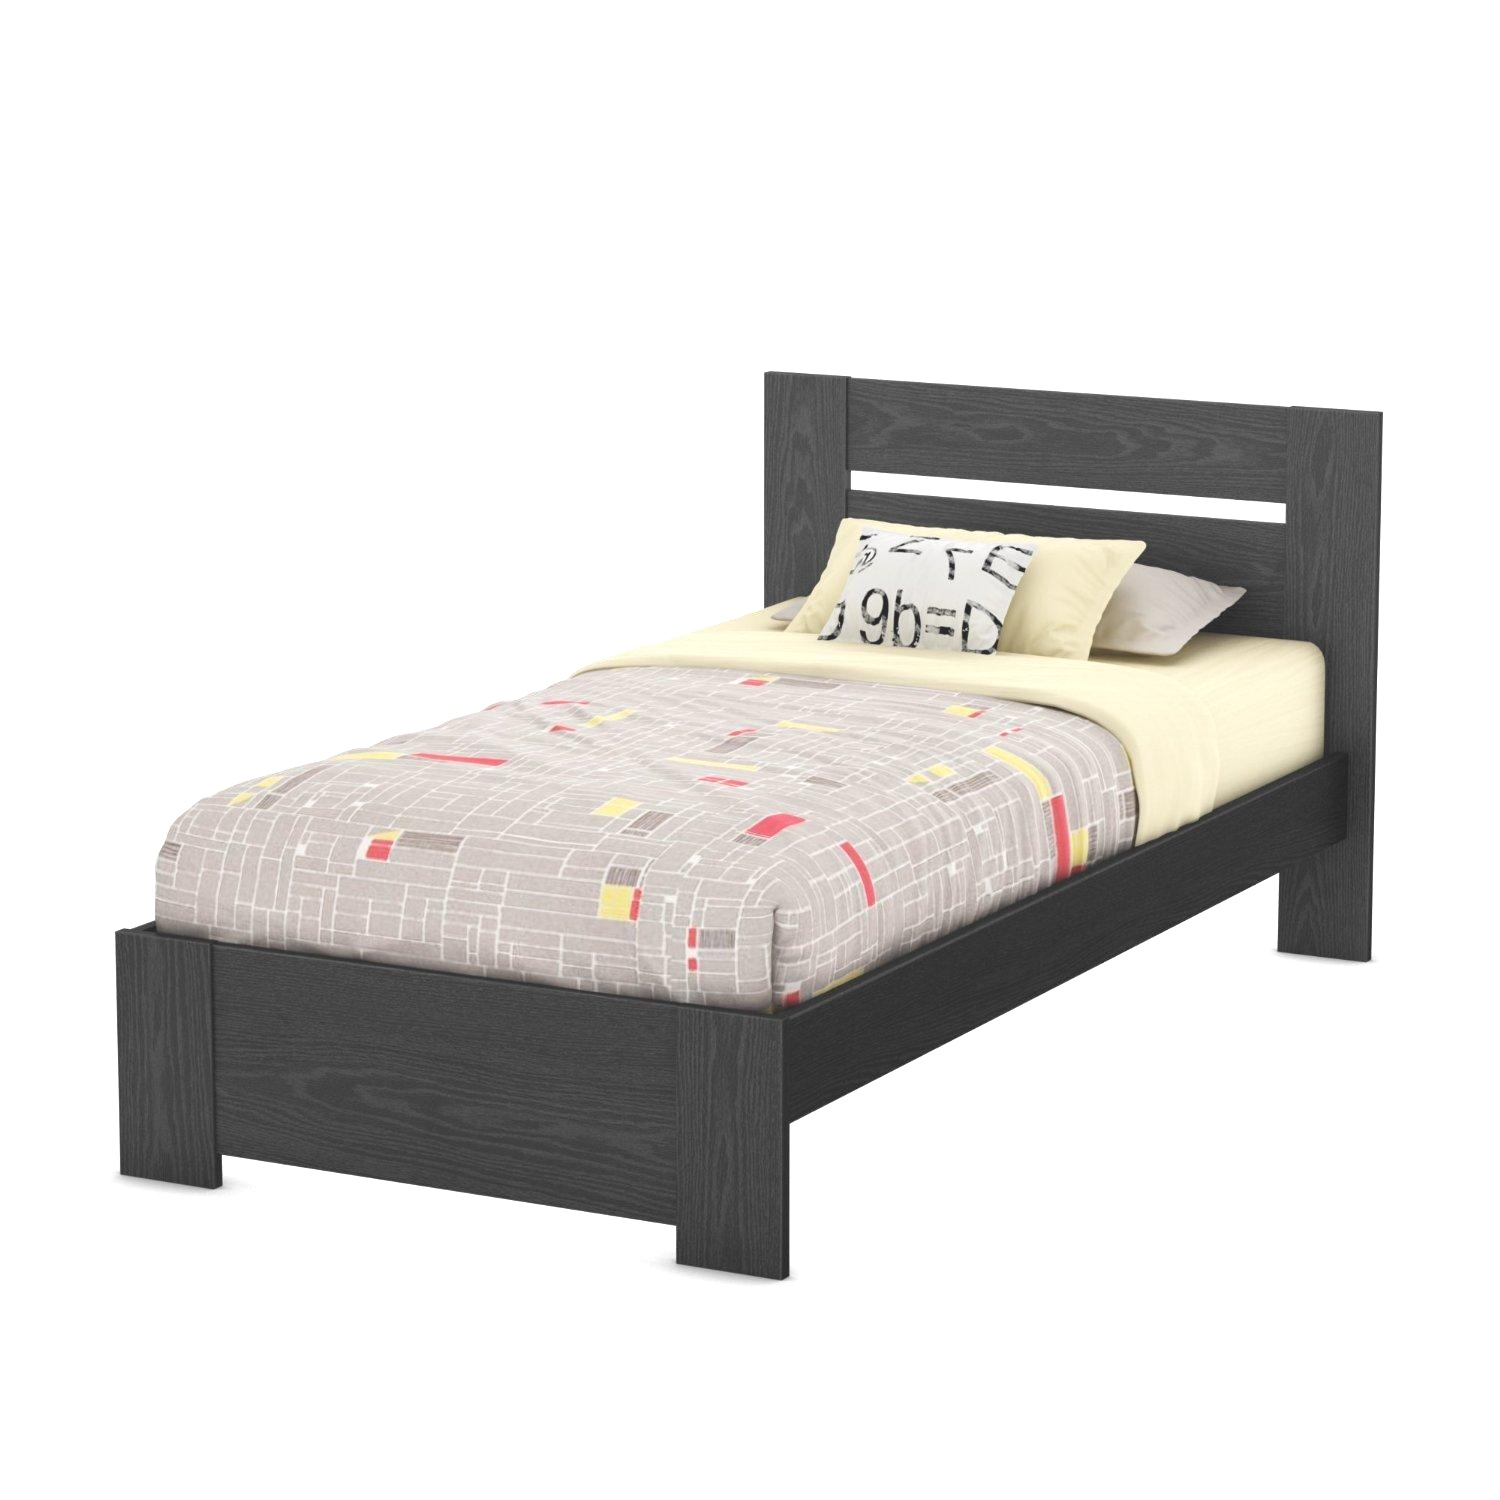 Twin bed frames for sale is so famous but roy home design for Beds for sale